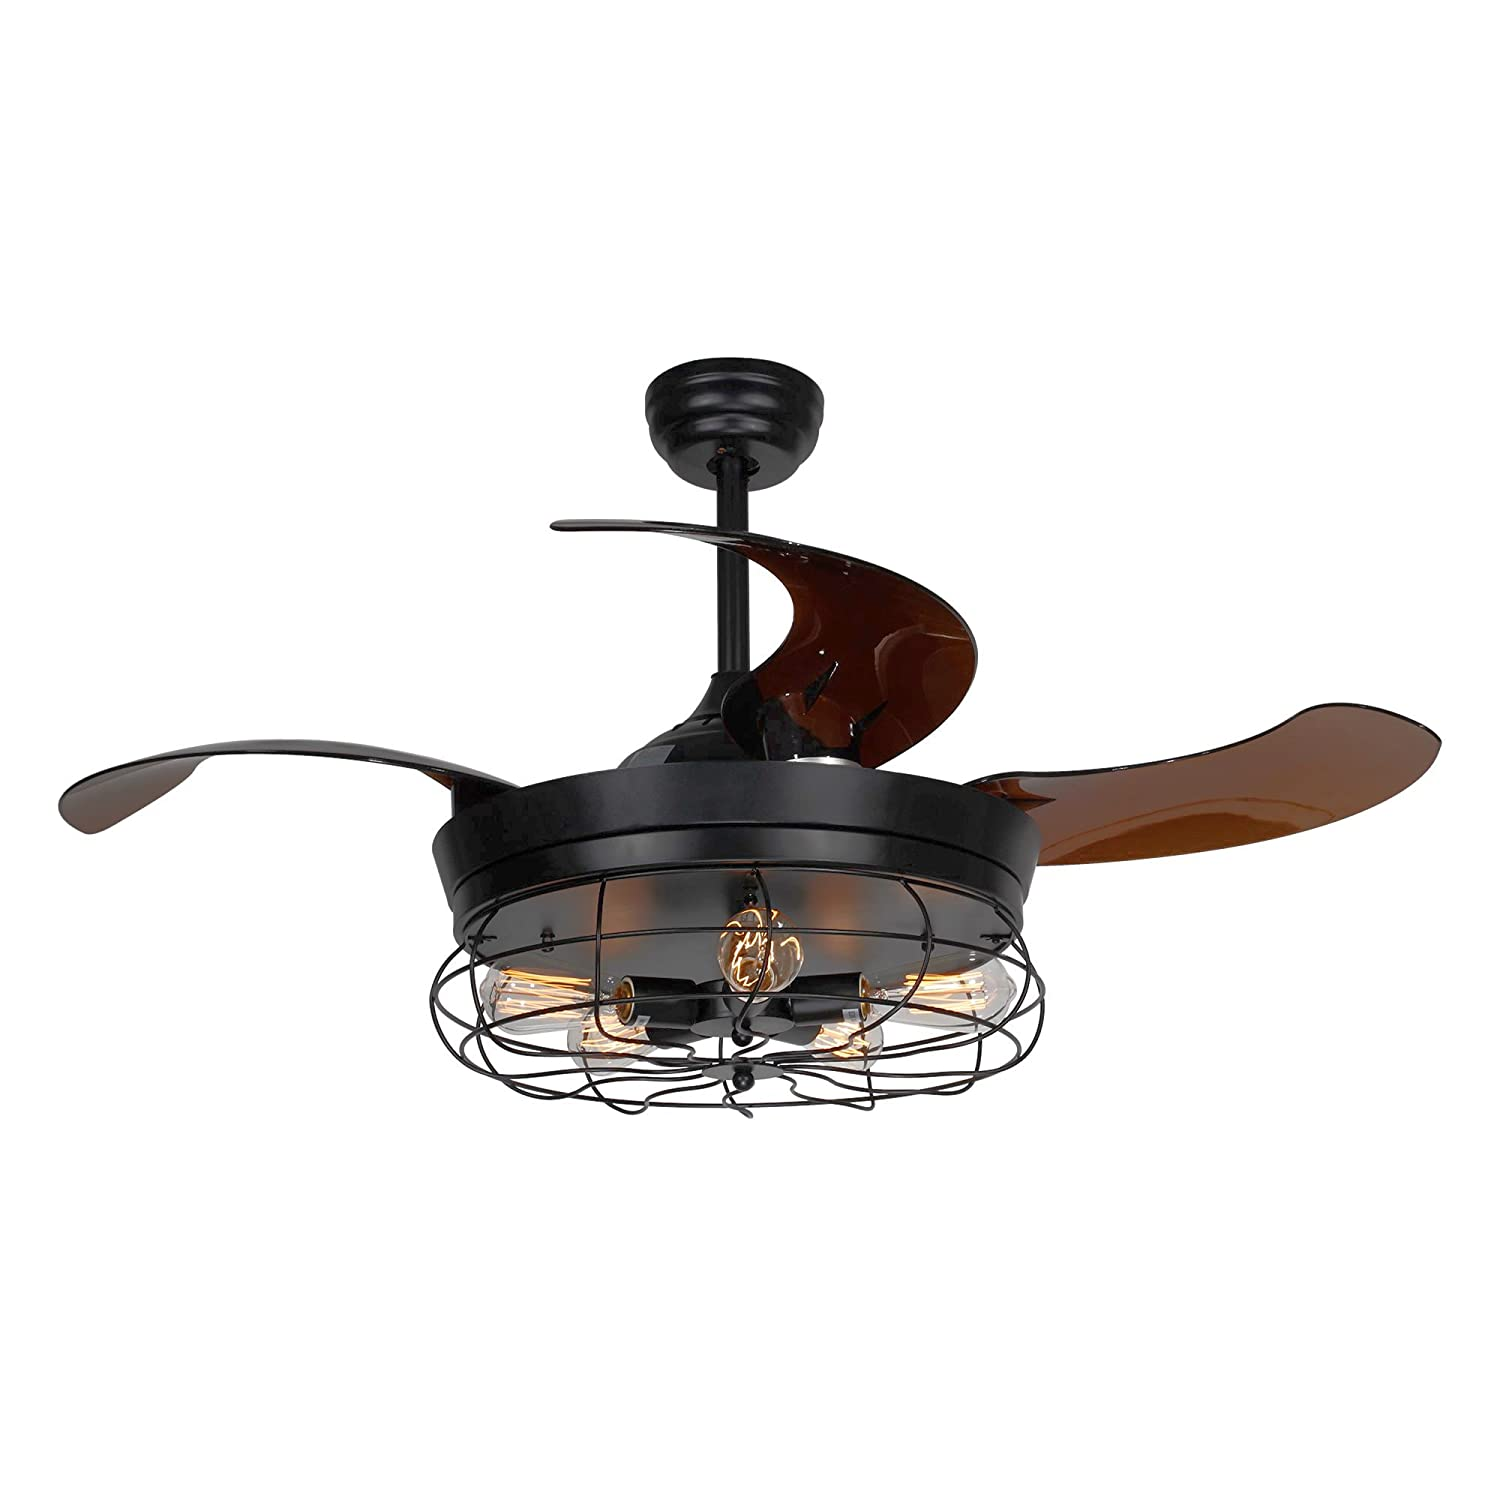 Parrot Uncle Ceiling Fan with Light 46 Inch Industrial Ceiling Fan ...